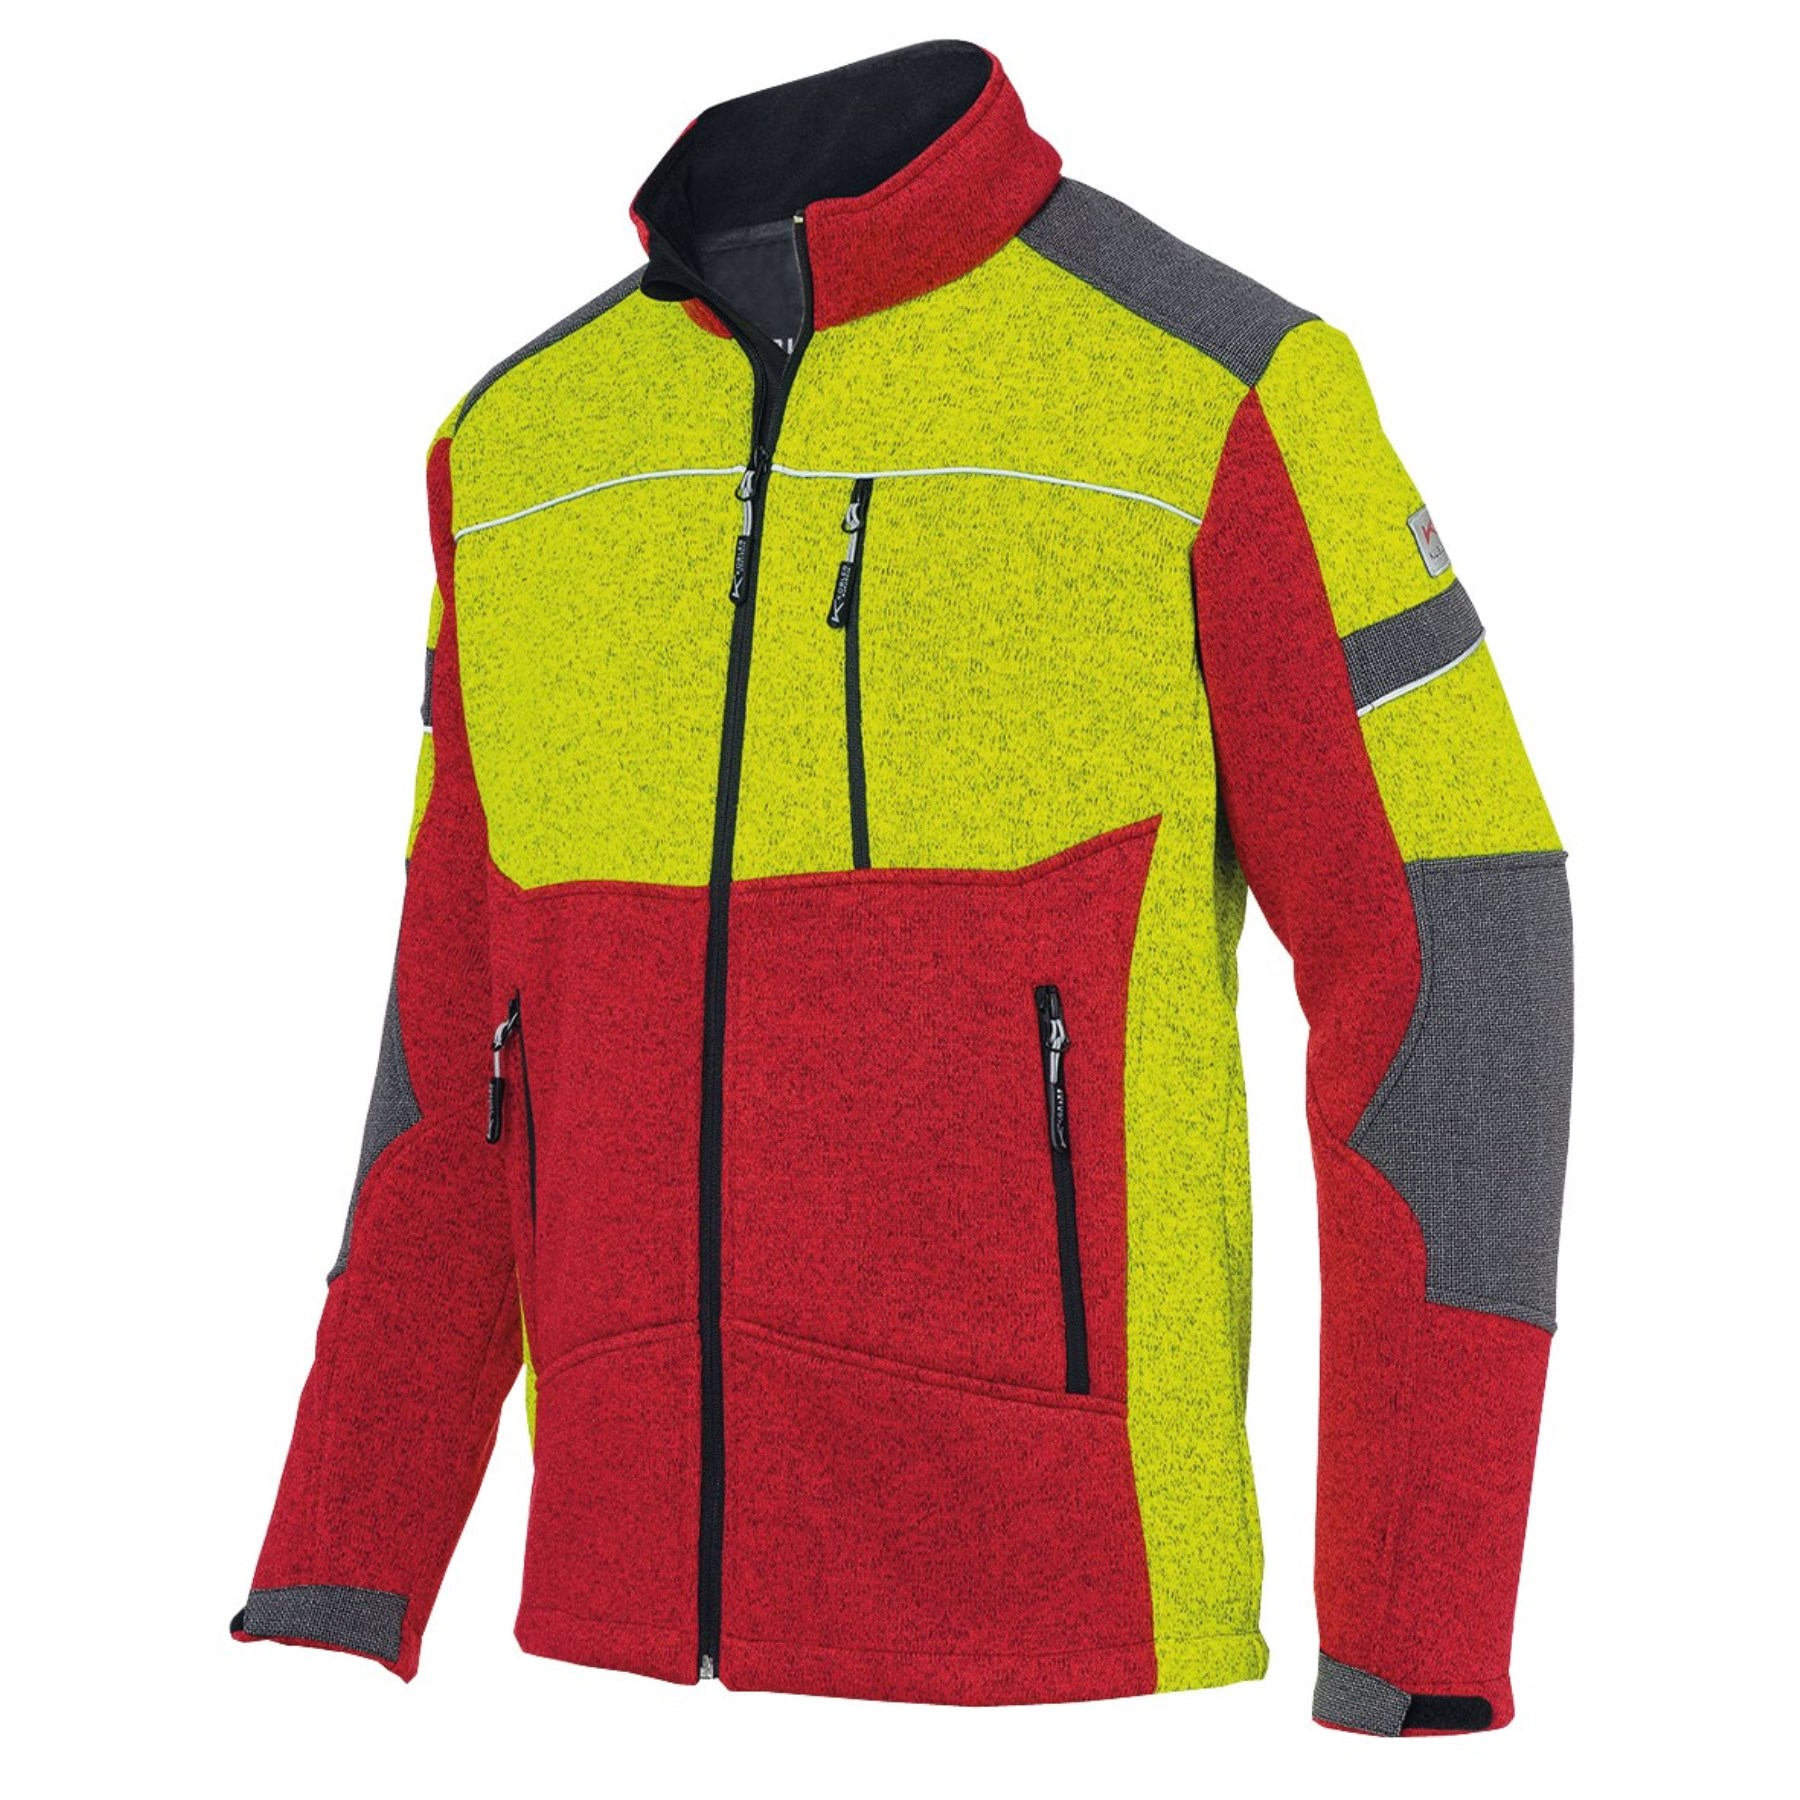 1253888 - Strickjacke Forest Gr.2XL rot/gelb